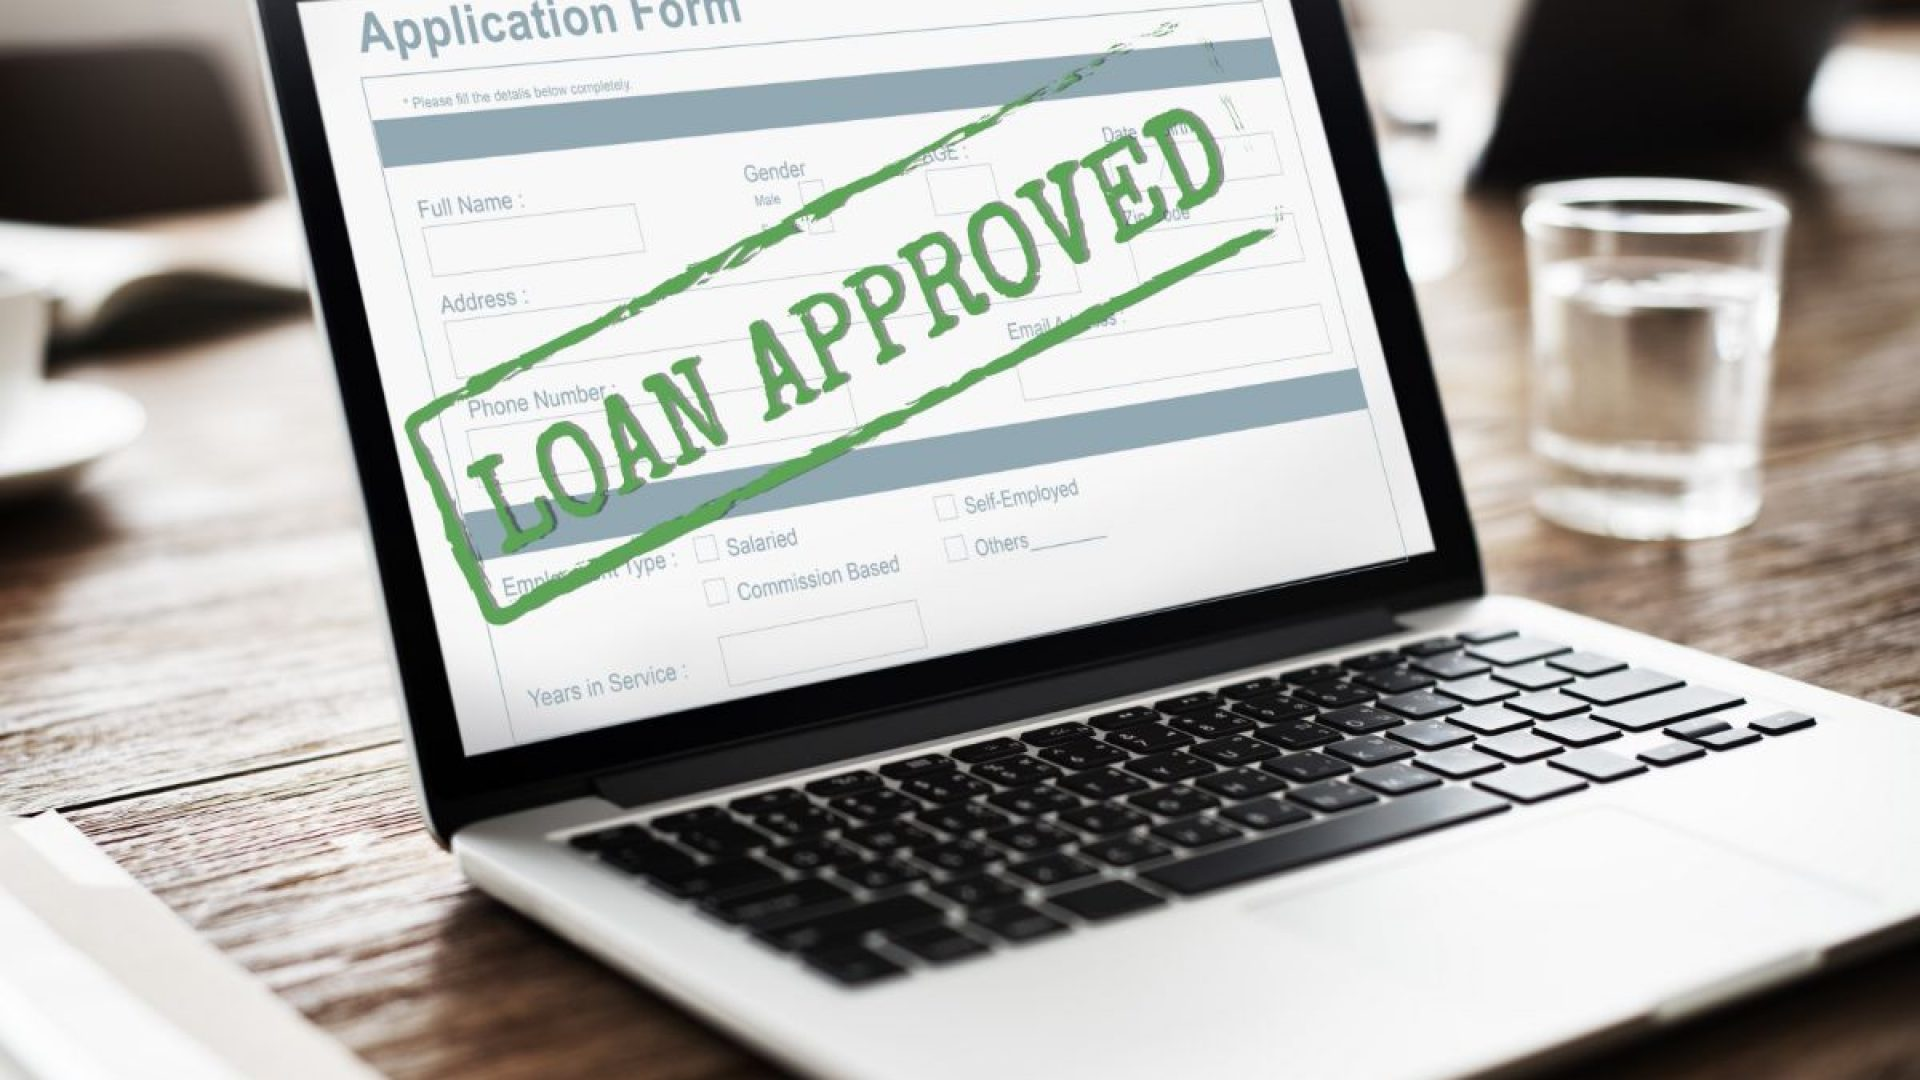 Get Pre-approved for a Home Loan Before You Home Shop